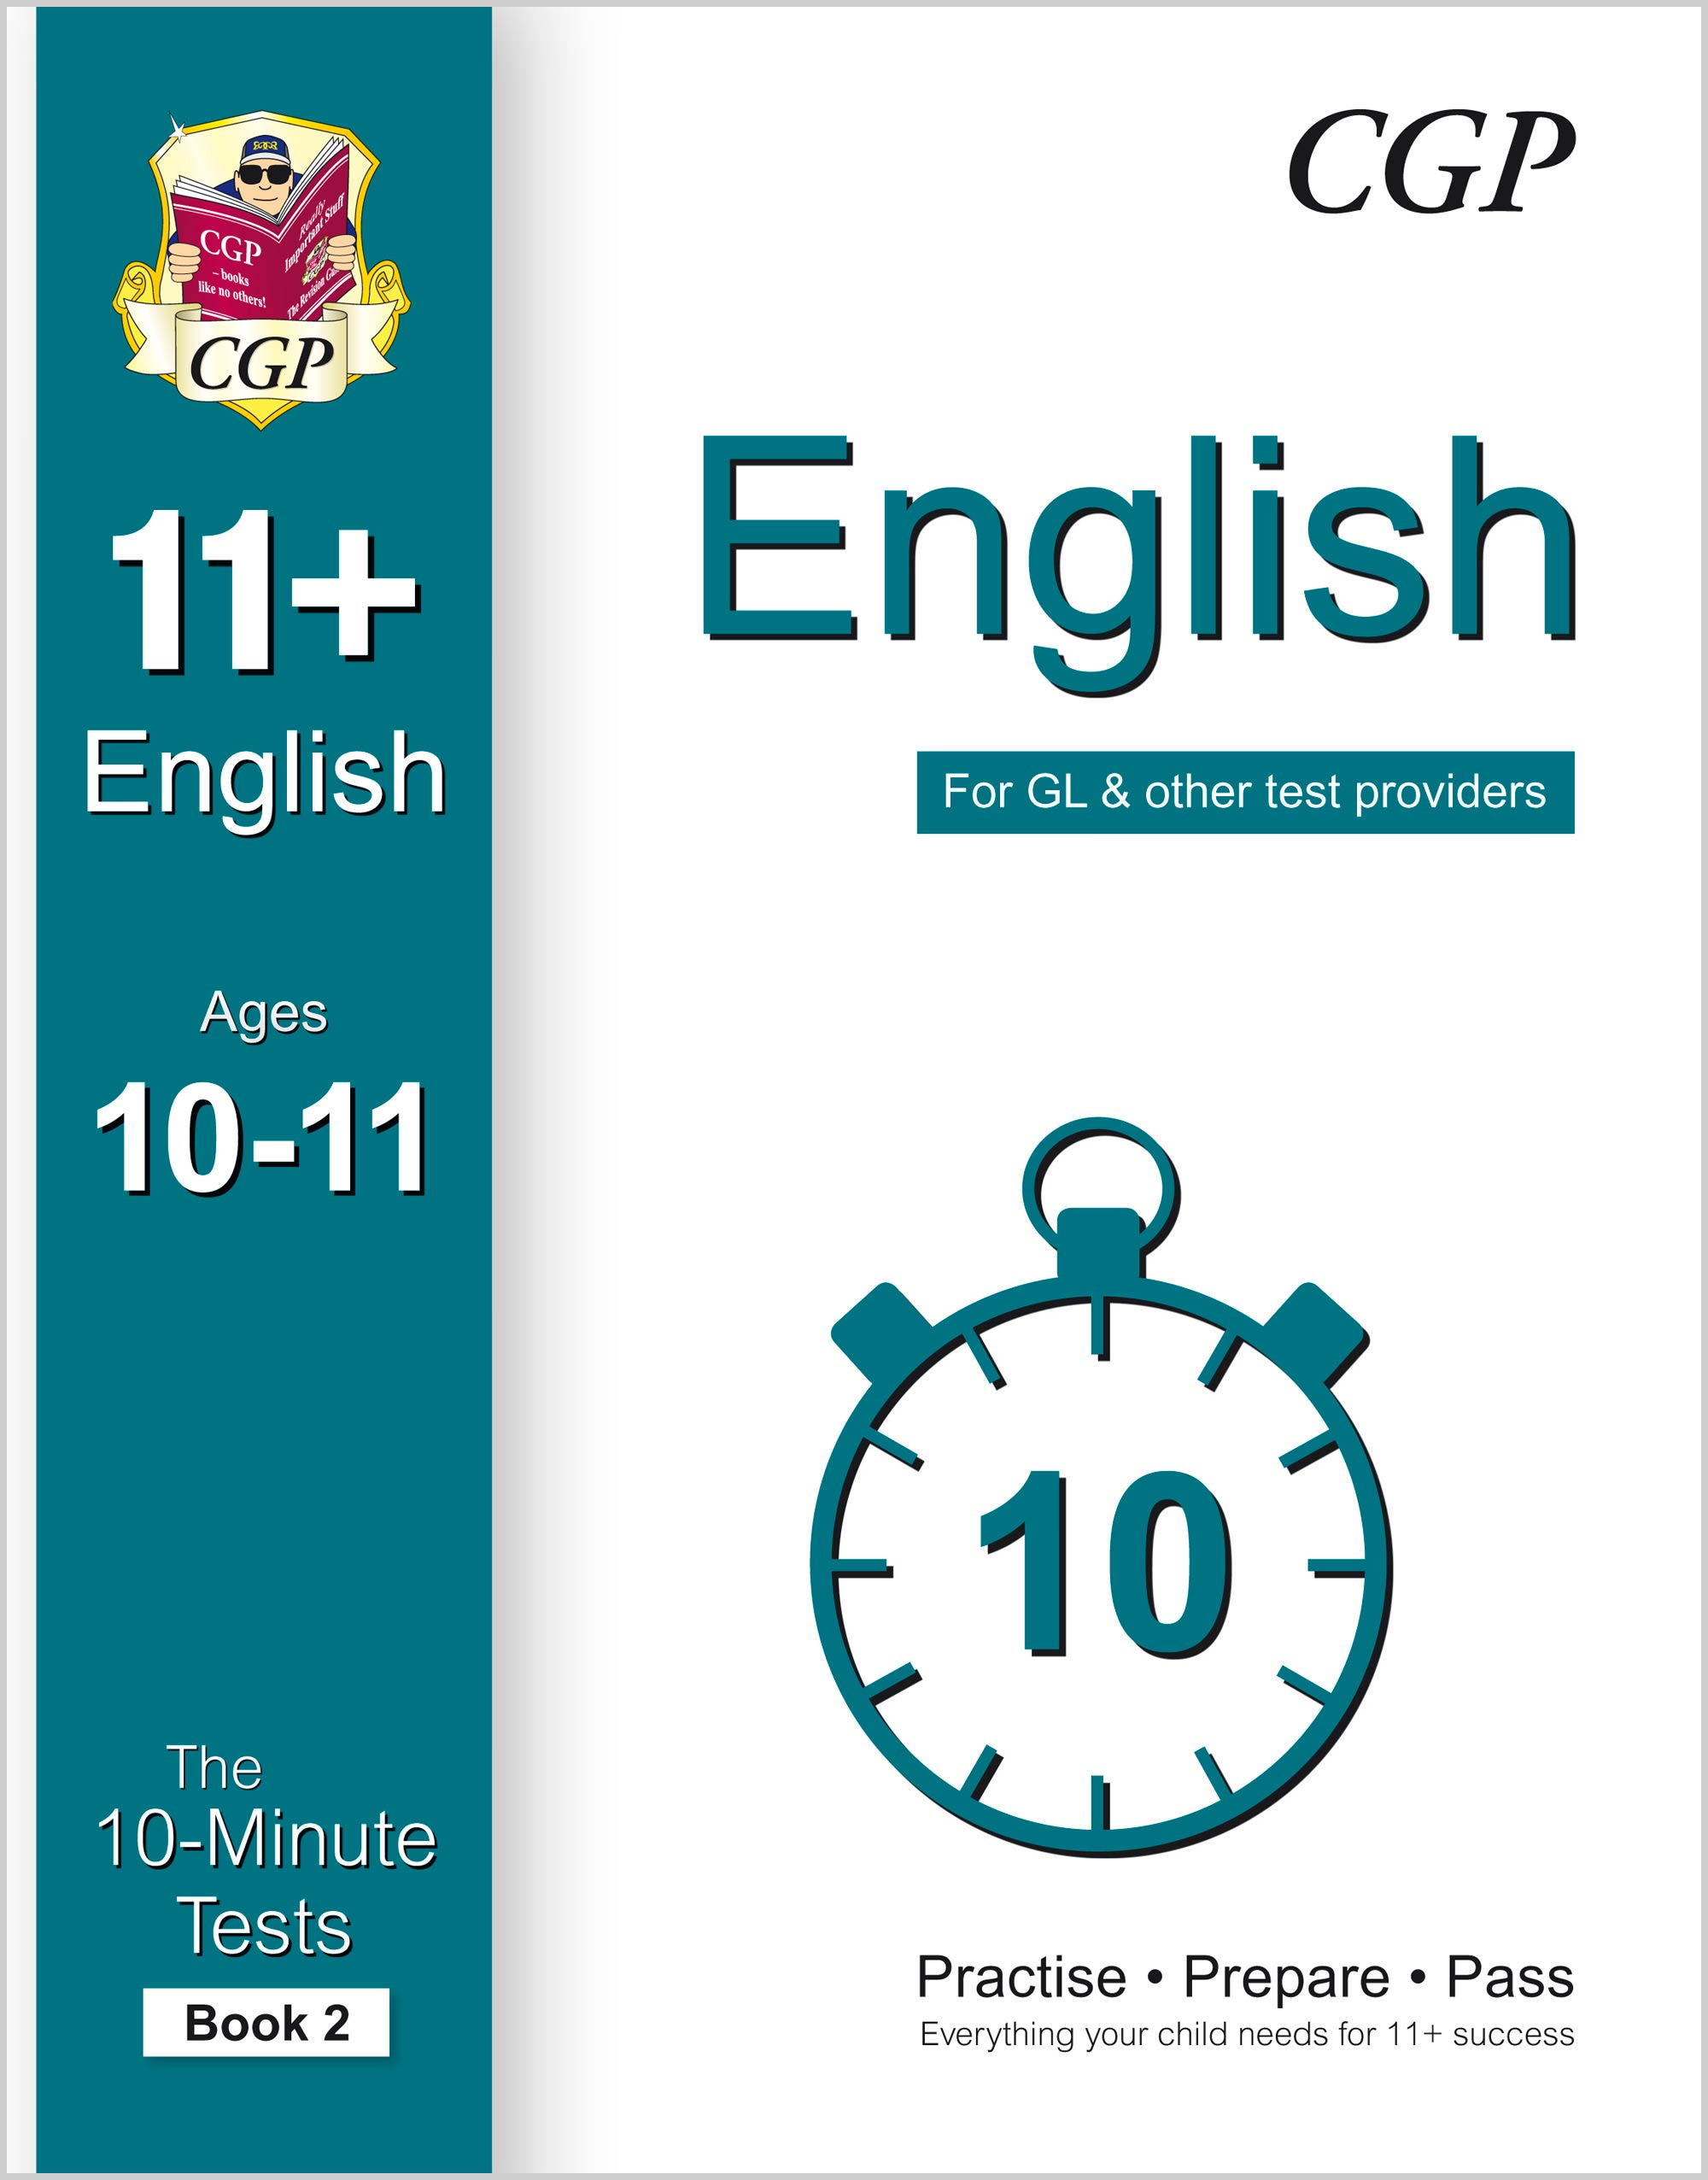 E6XP2E1 - 10-Minute Tests for 11+ English Ages 10-11 (Book 2) - for GL & Other Test Providers